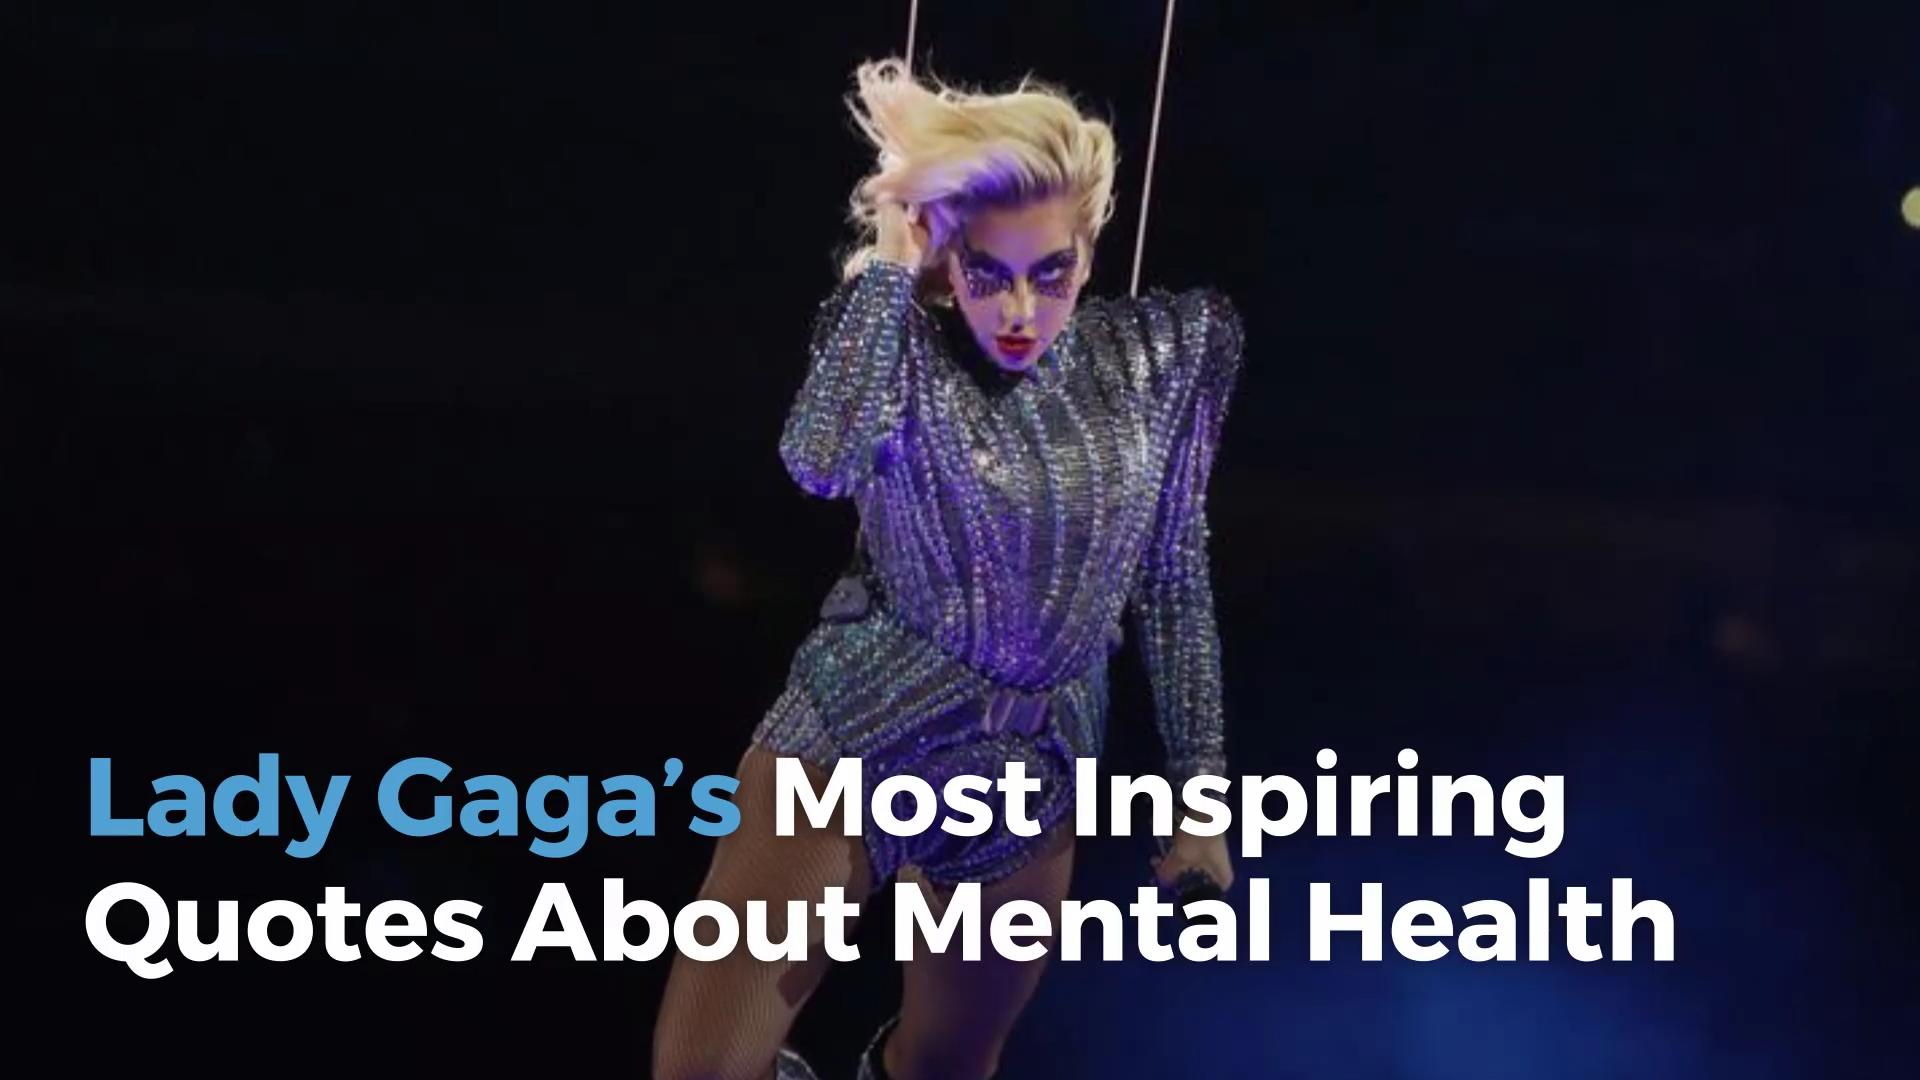 Inspirational Quotes For Health: Lady Gaga's Most Inspiring Quotes About Mental Health